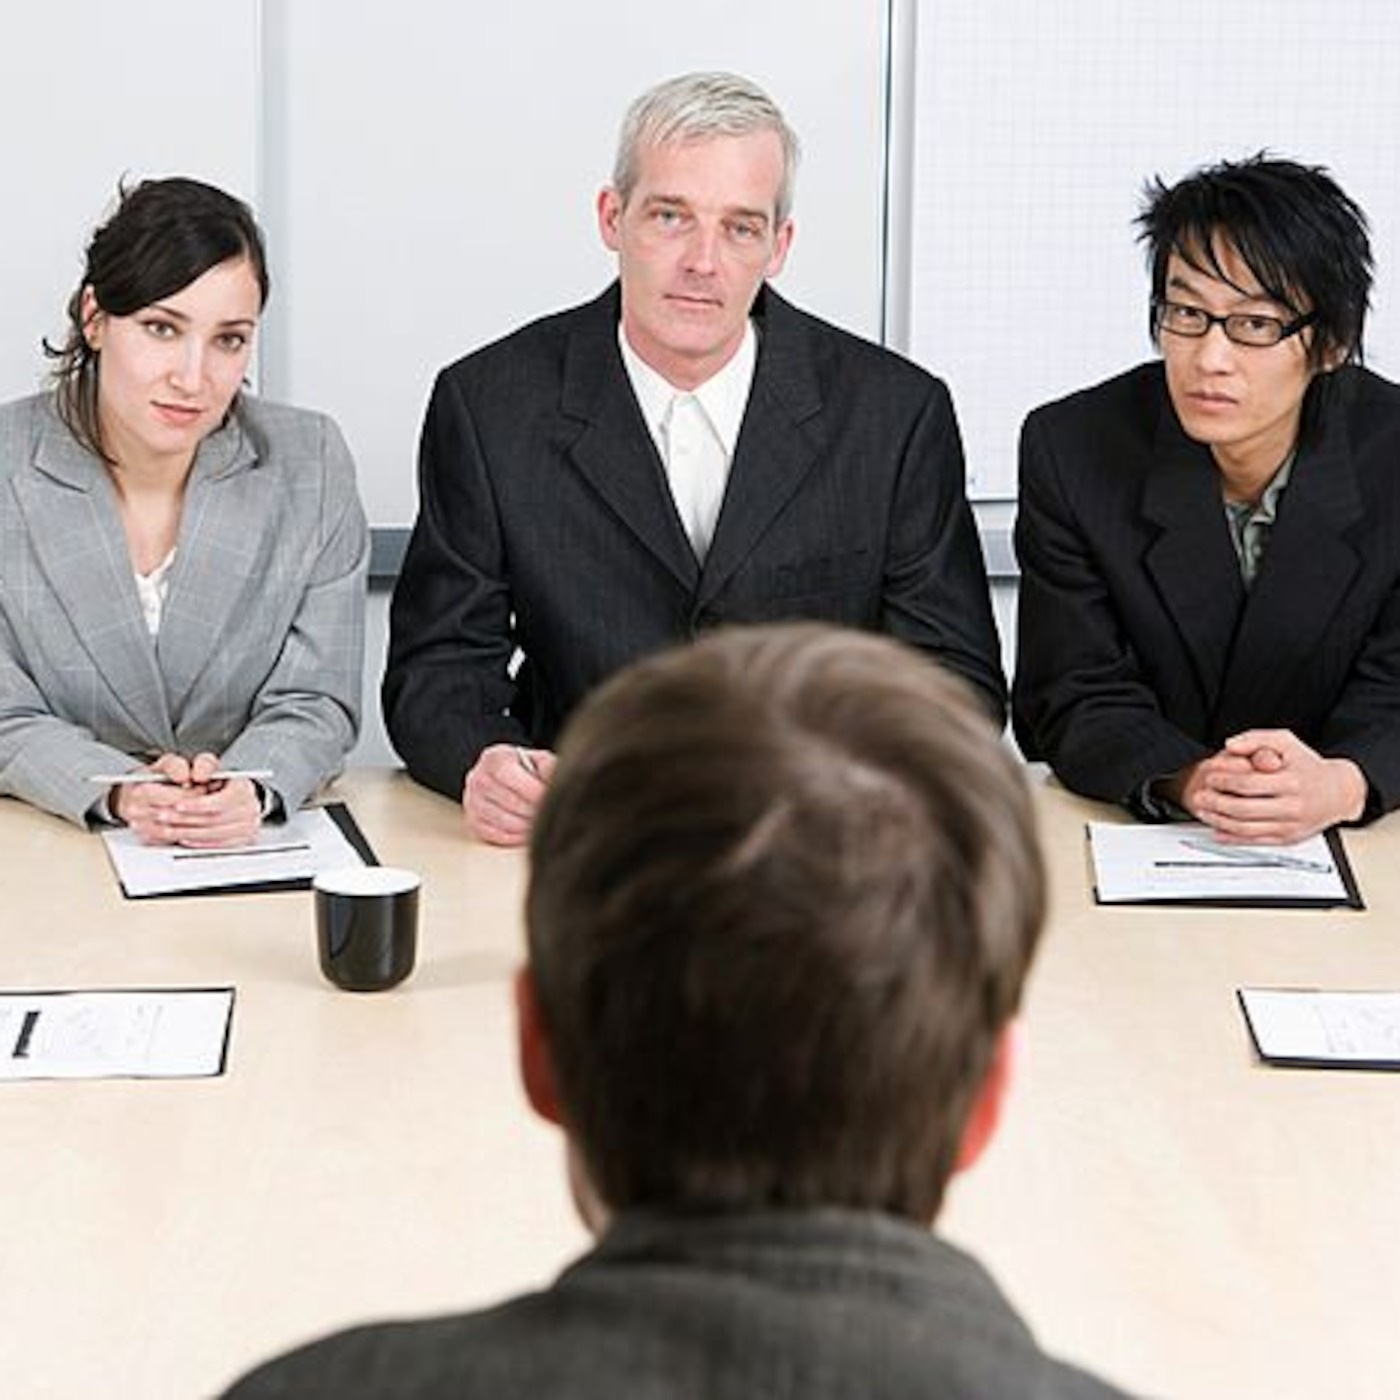 basic interview tips, freshers, interview tips and answers for freshers, fresher interview questions and answers, job